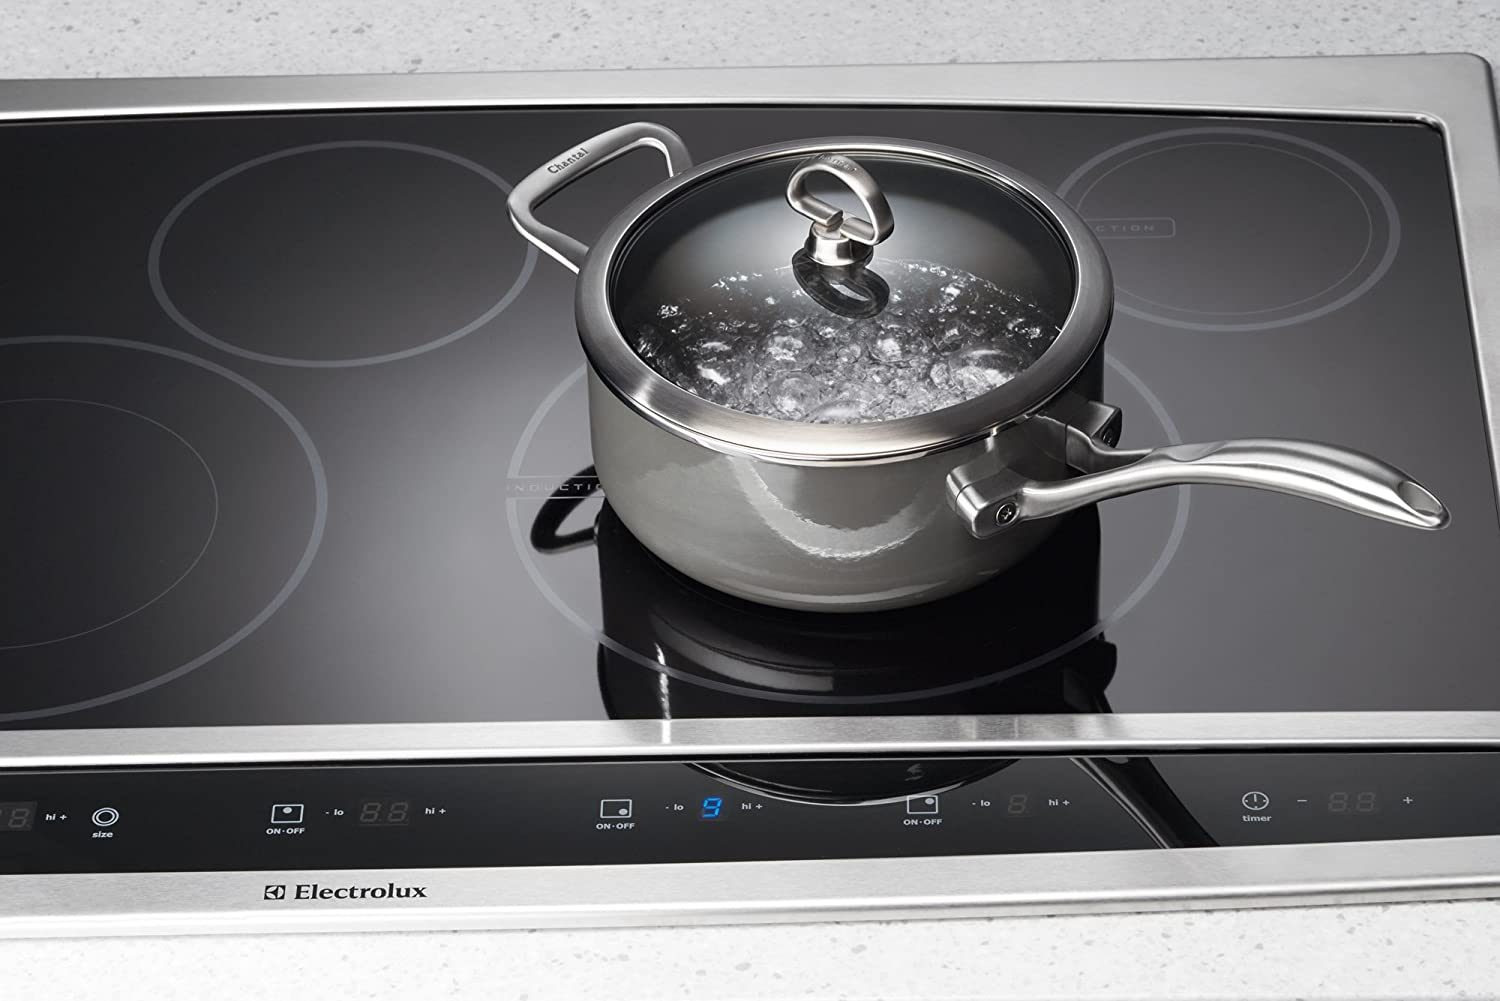 Amazon.com: Electrolux ew30cc55gswave-touch 30